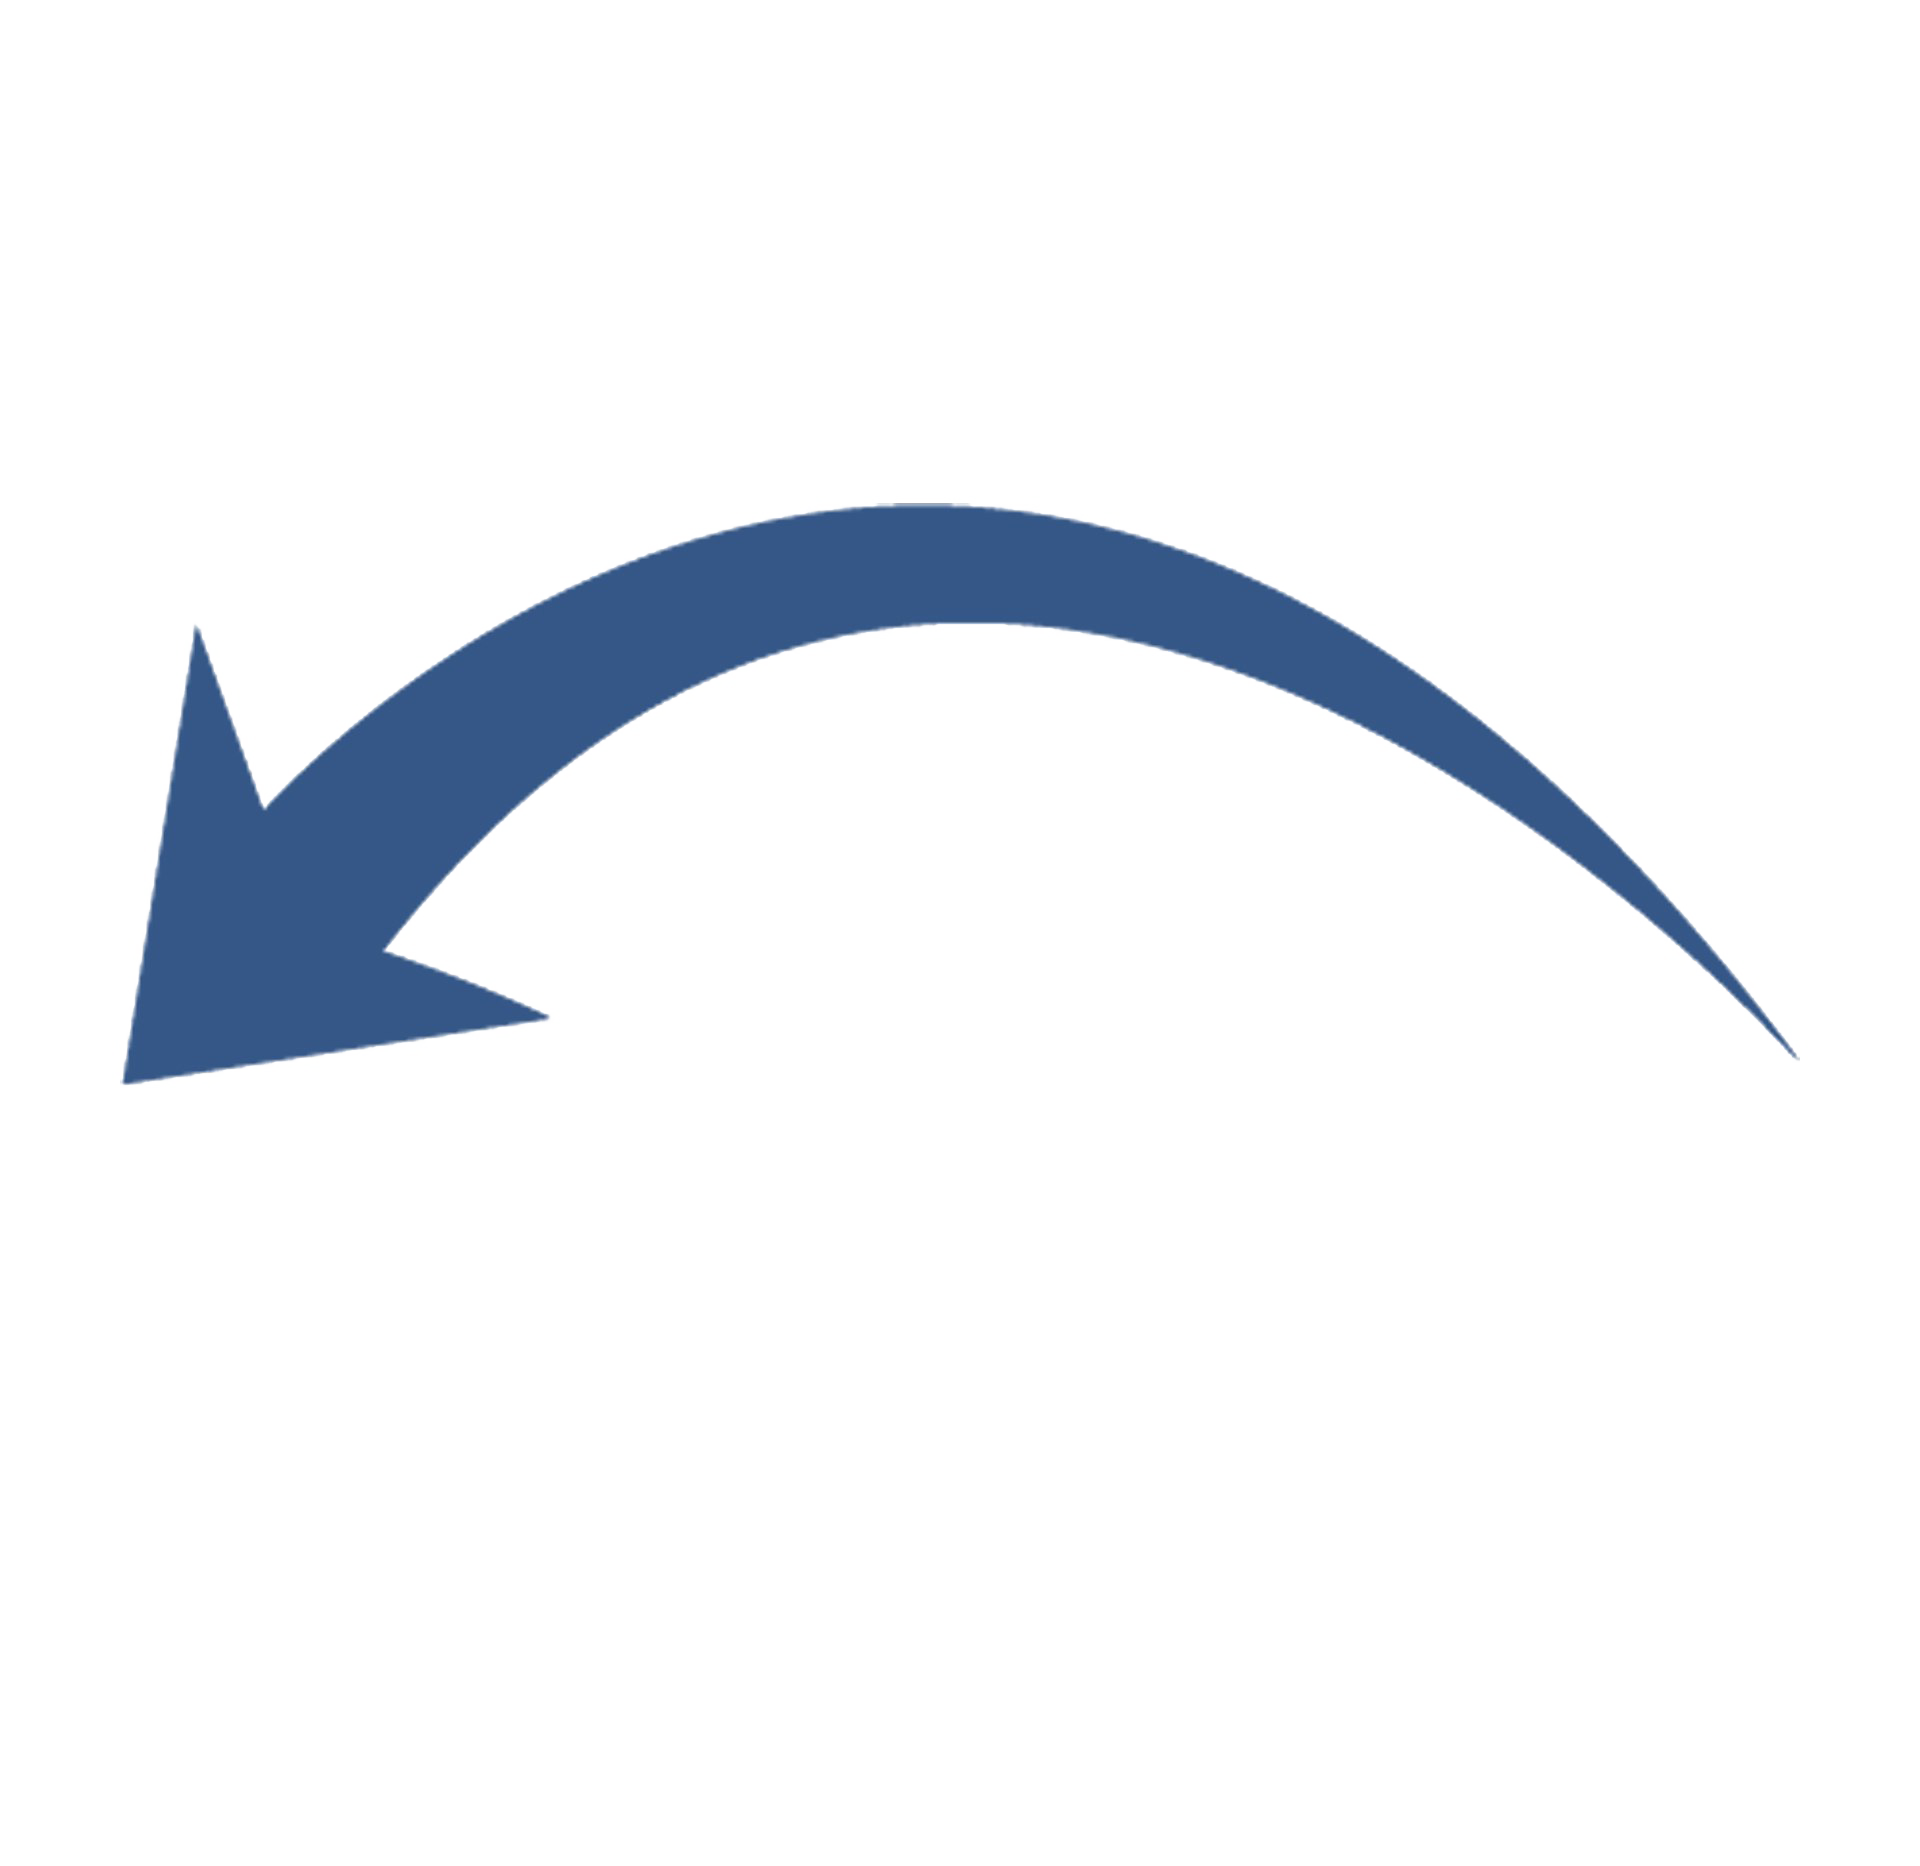 Curved-Arrow-PNG-Transparent-HD-Photo.png